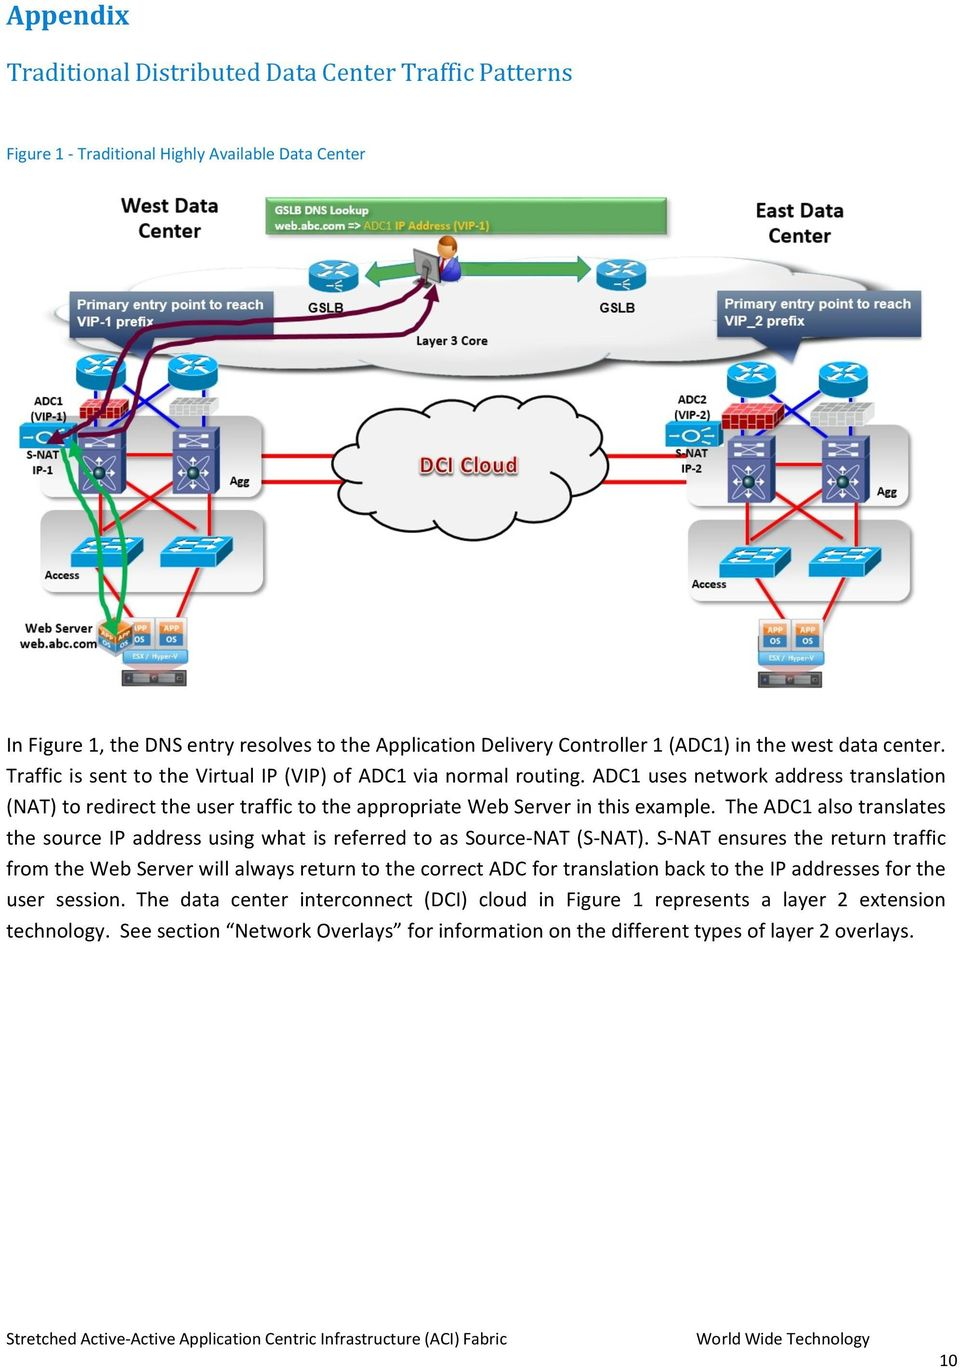 ADC1 uses network address translation (NAT) to redirect the user traffic to the appropriate Web Server in this example.